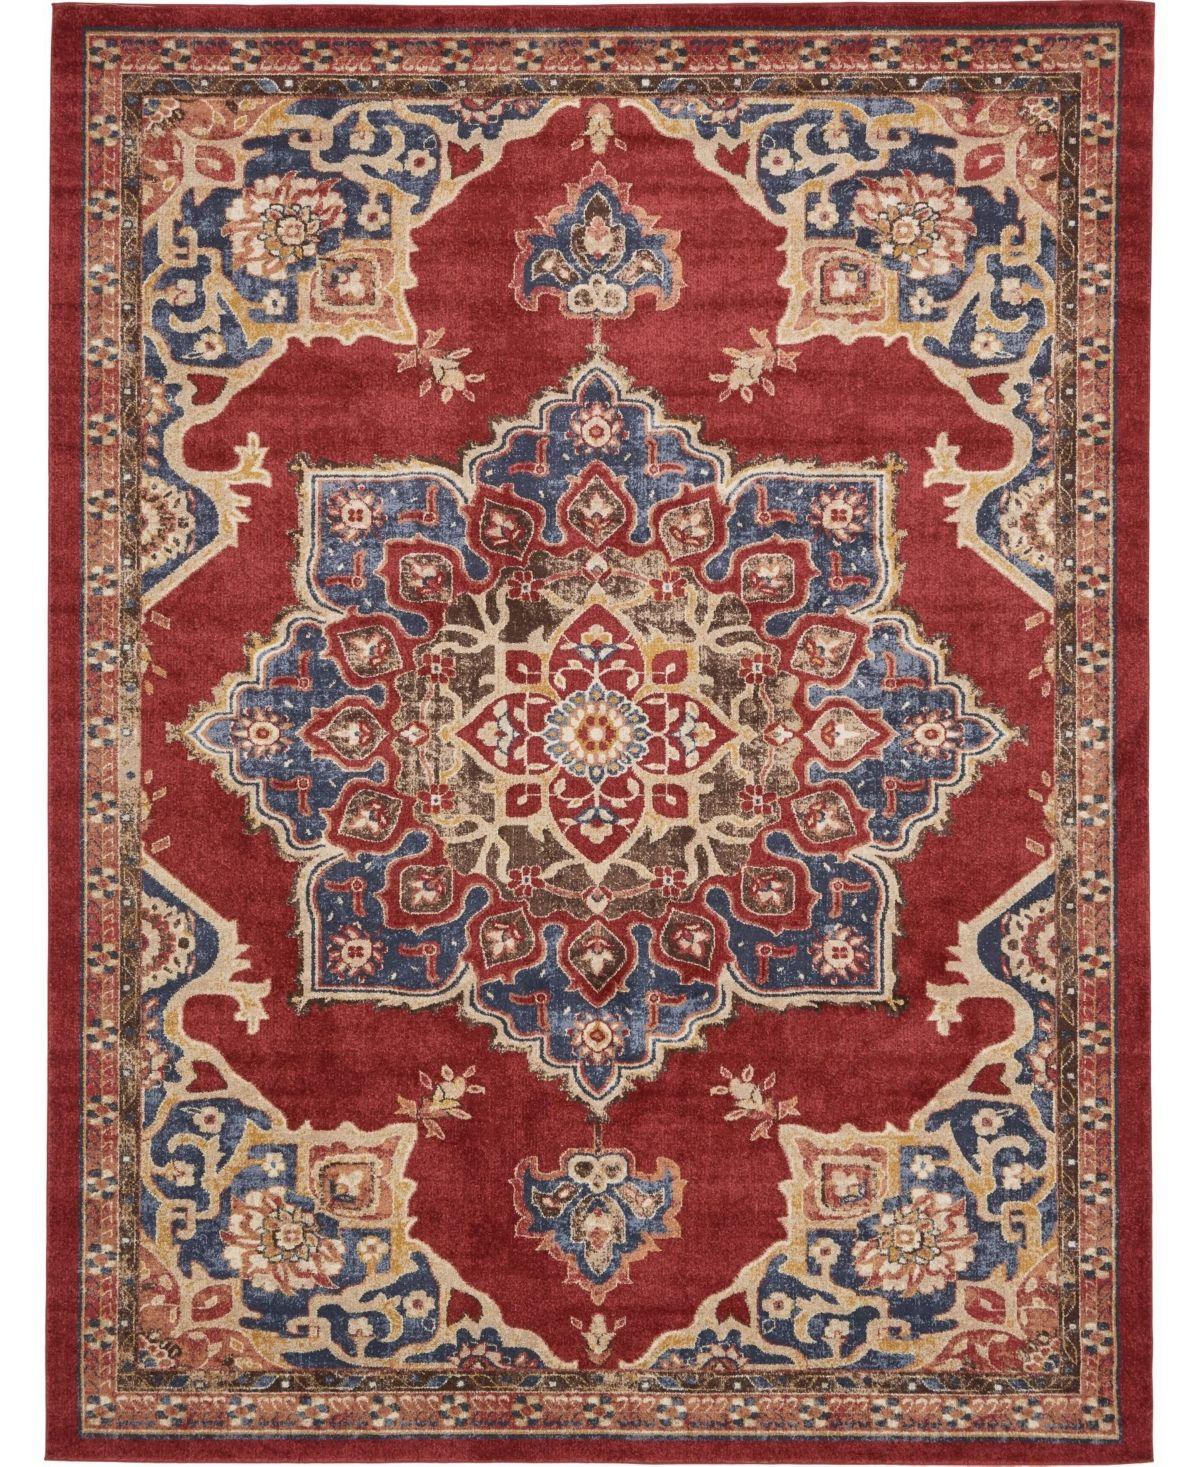 Bridgeport Home Shangri Shg3 Burgundy 9 X 12 Area Rug Burgundy